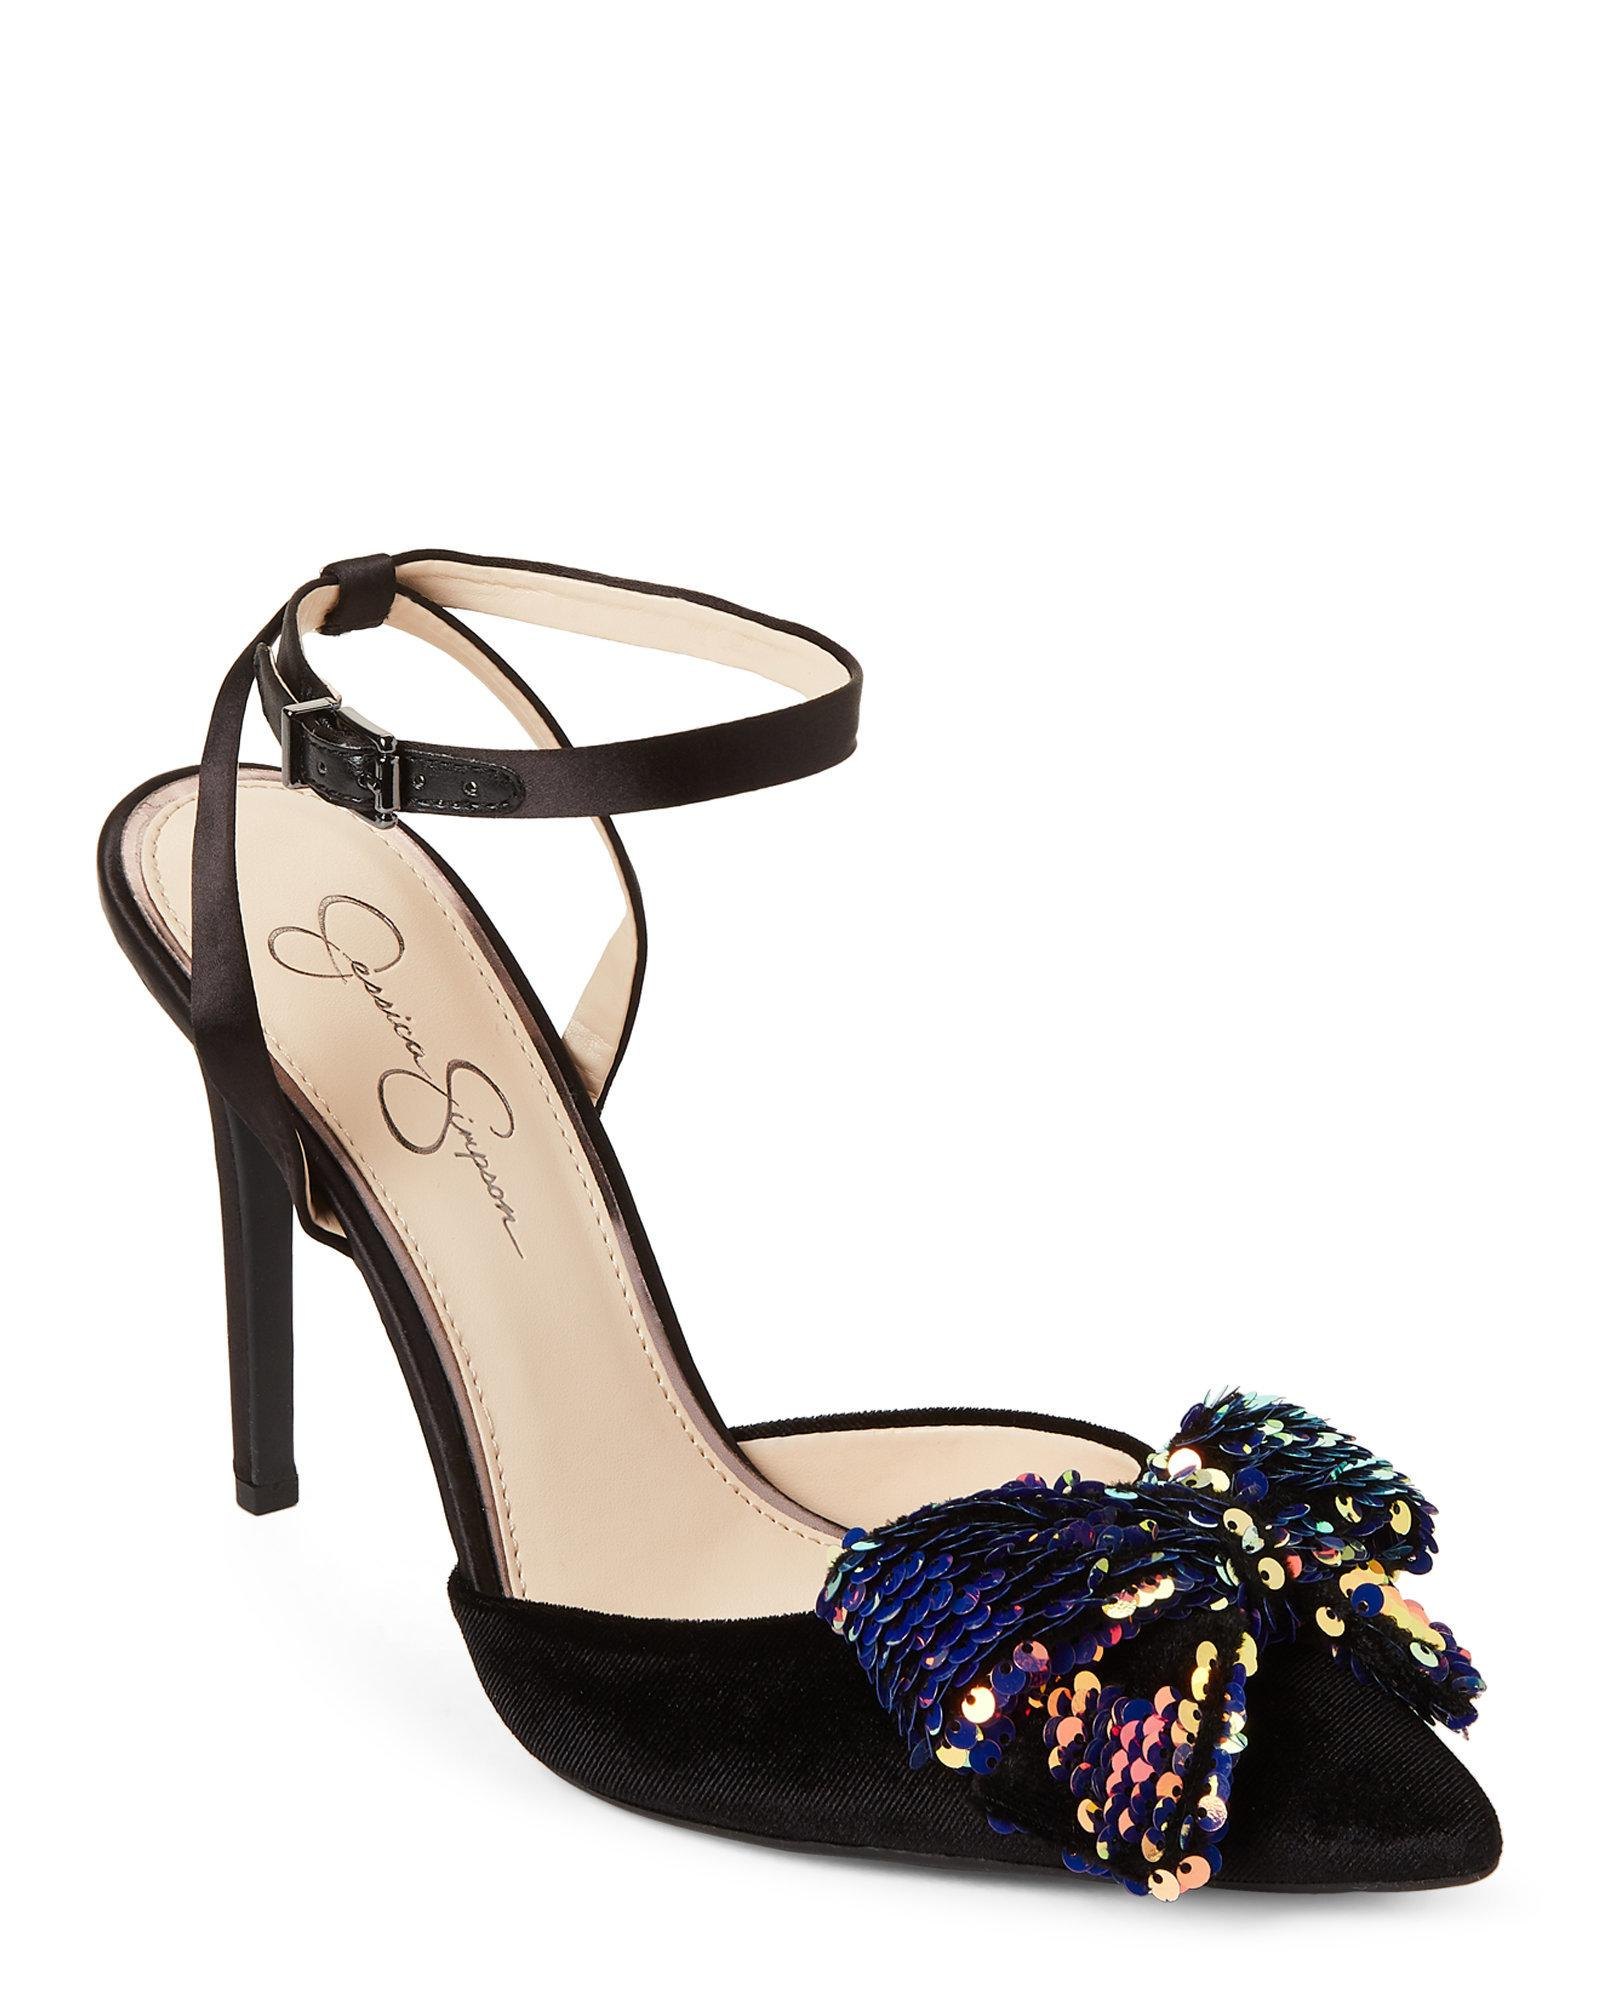 06984a0cd92b Lyst - Jessica Simpson Black Pearlanna Sequin Bow Velvet Pumps in Black